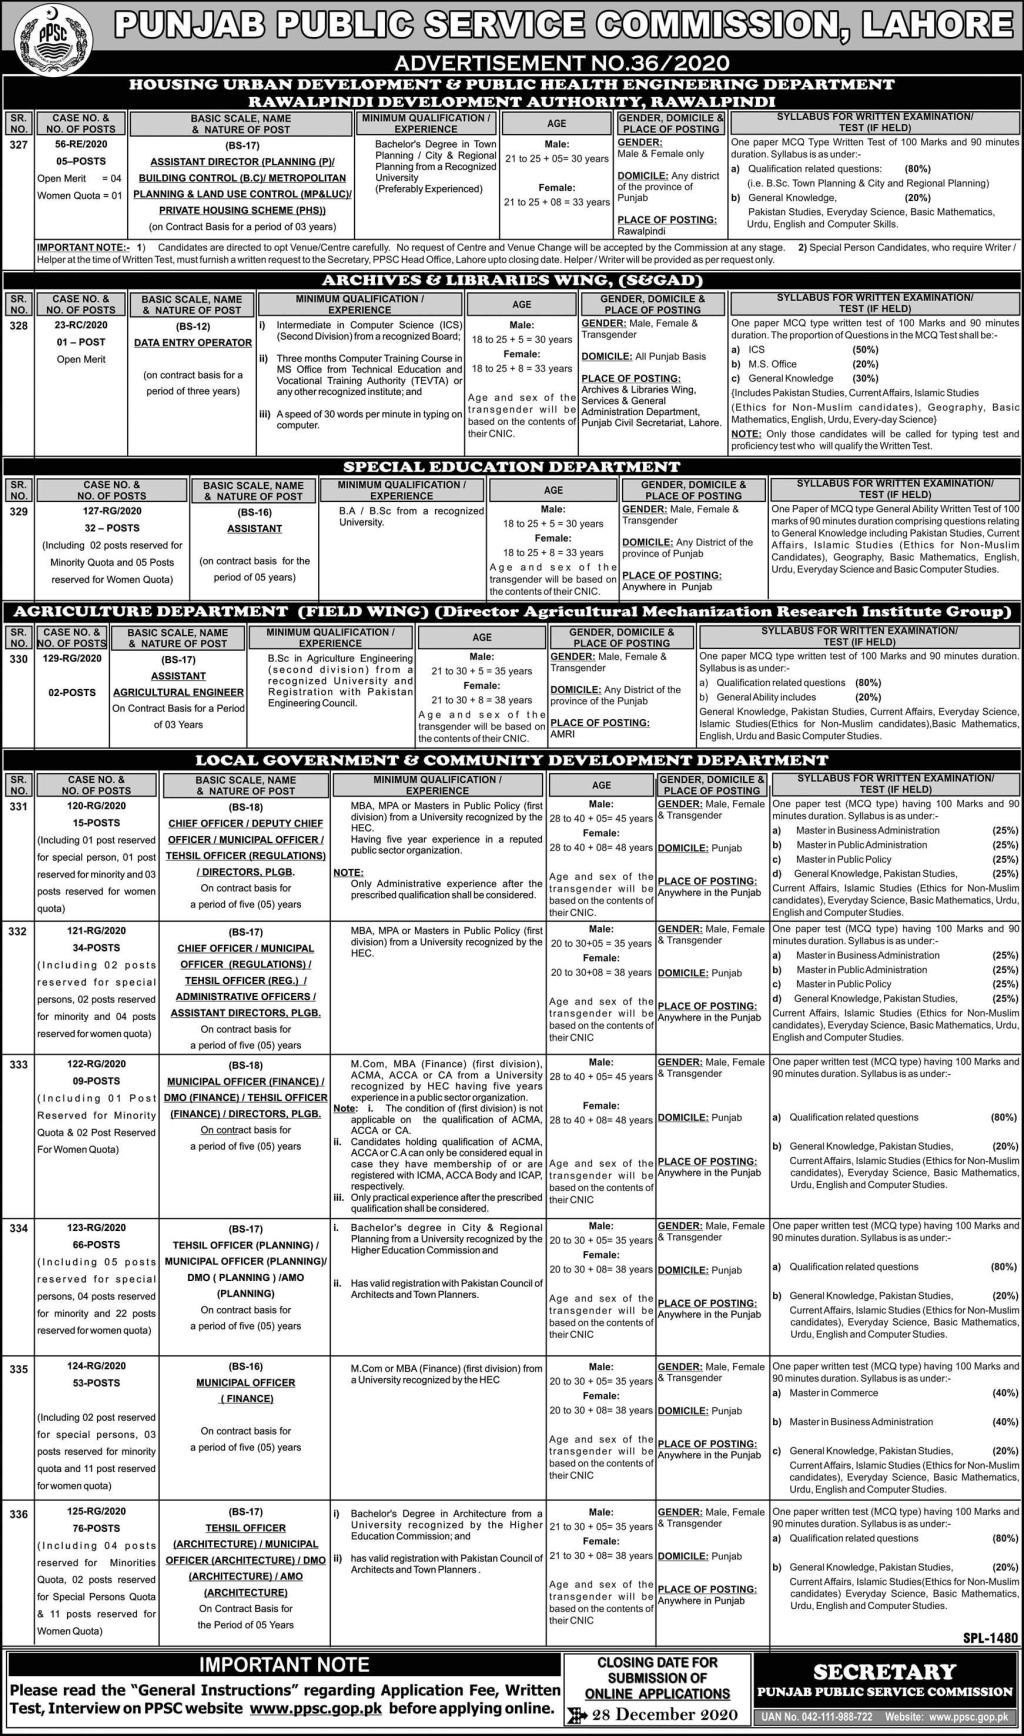 Govt of Punjab - Special Education Department